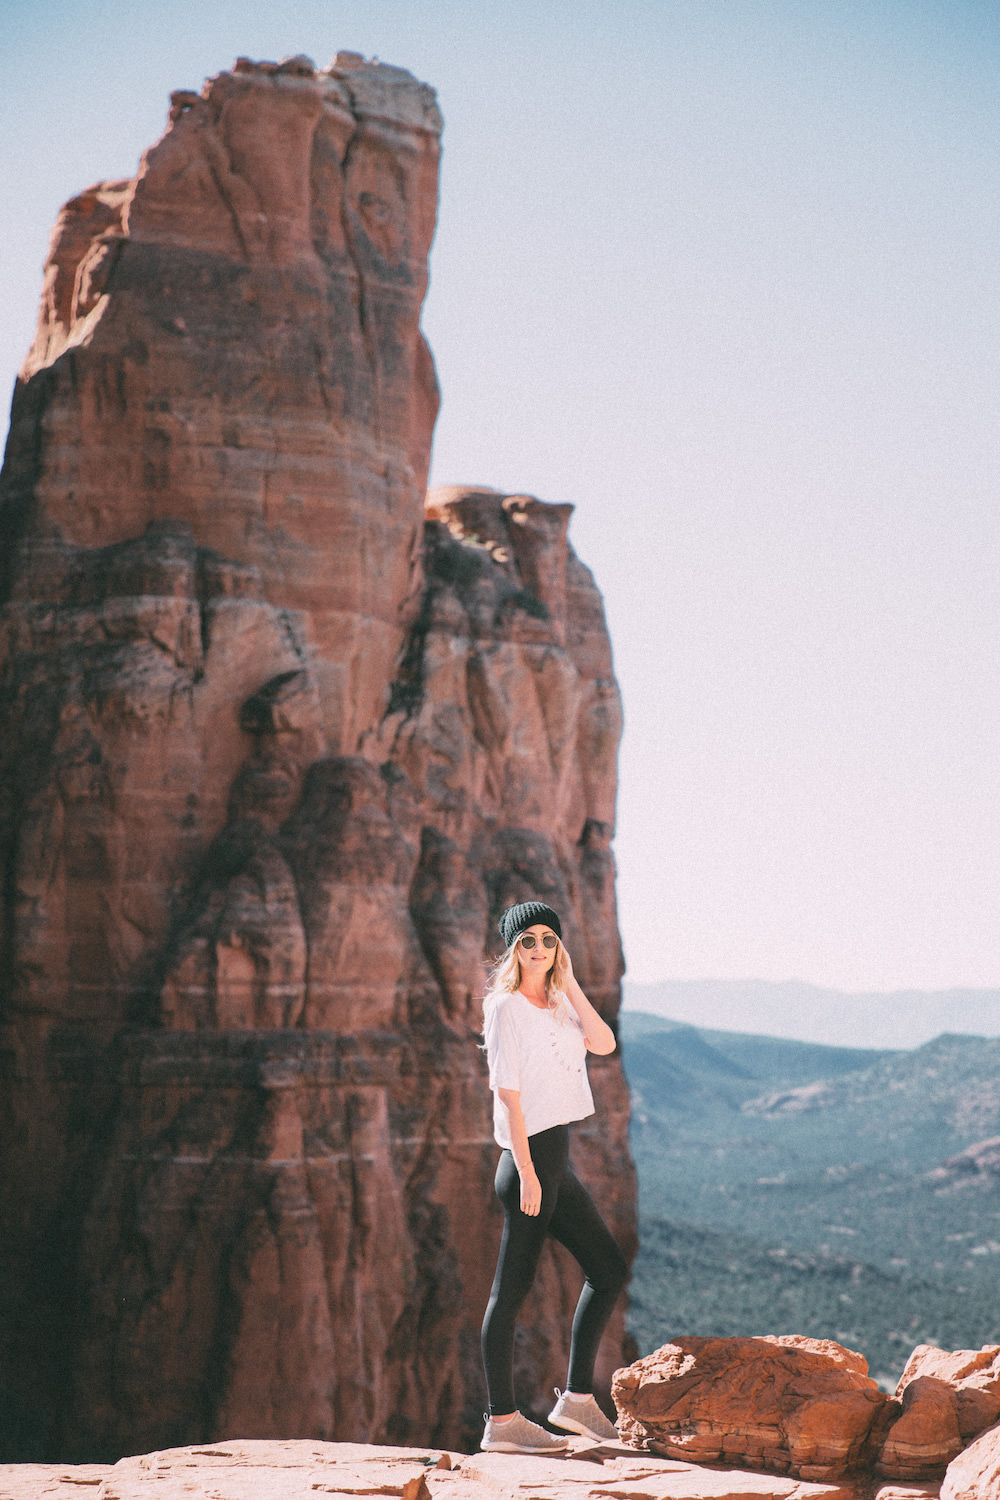 dash of darling shares her adventures hiking cathedral rock in sedona, arizona